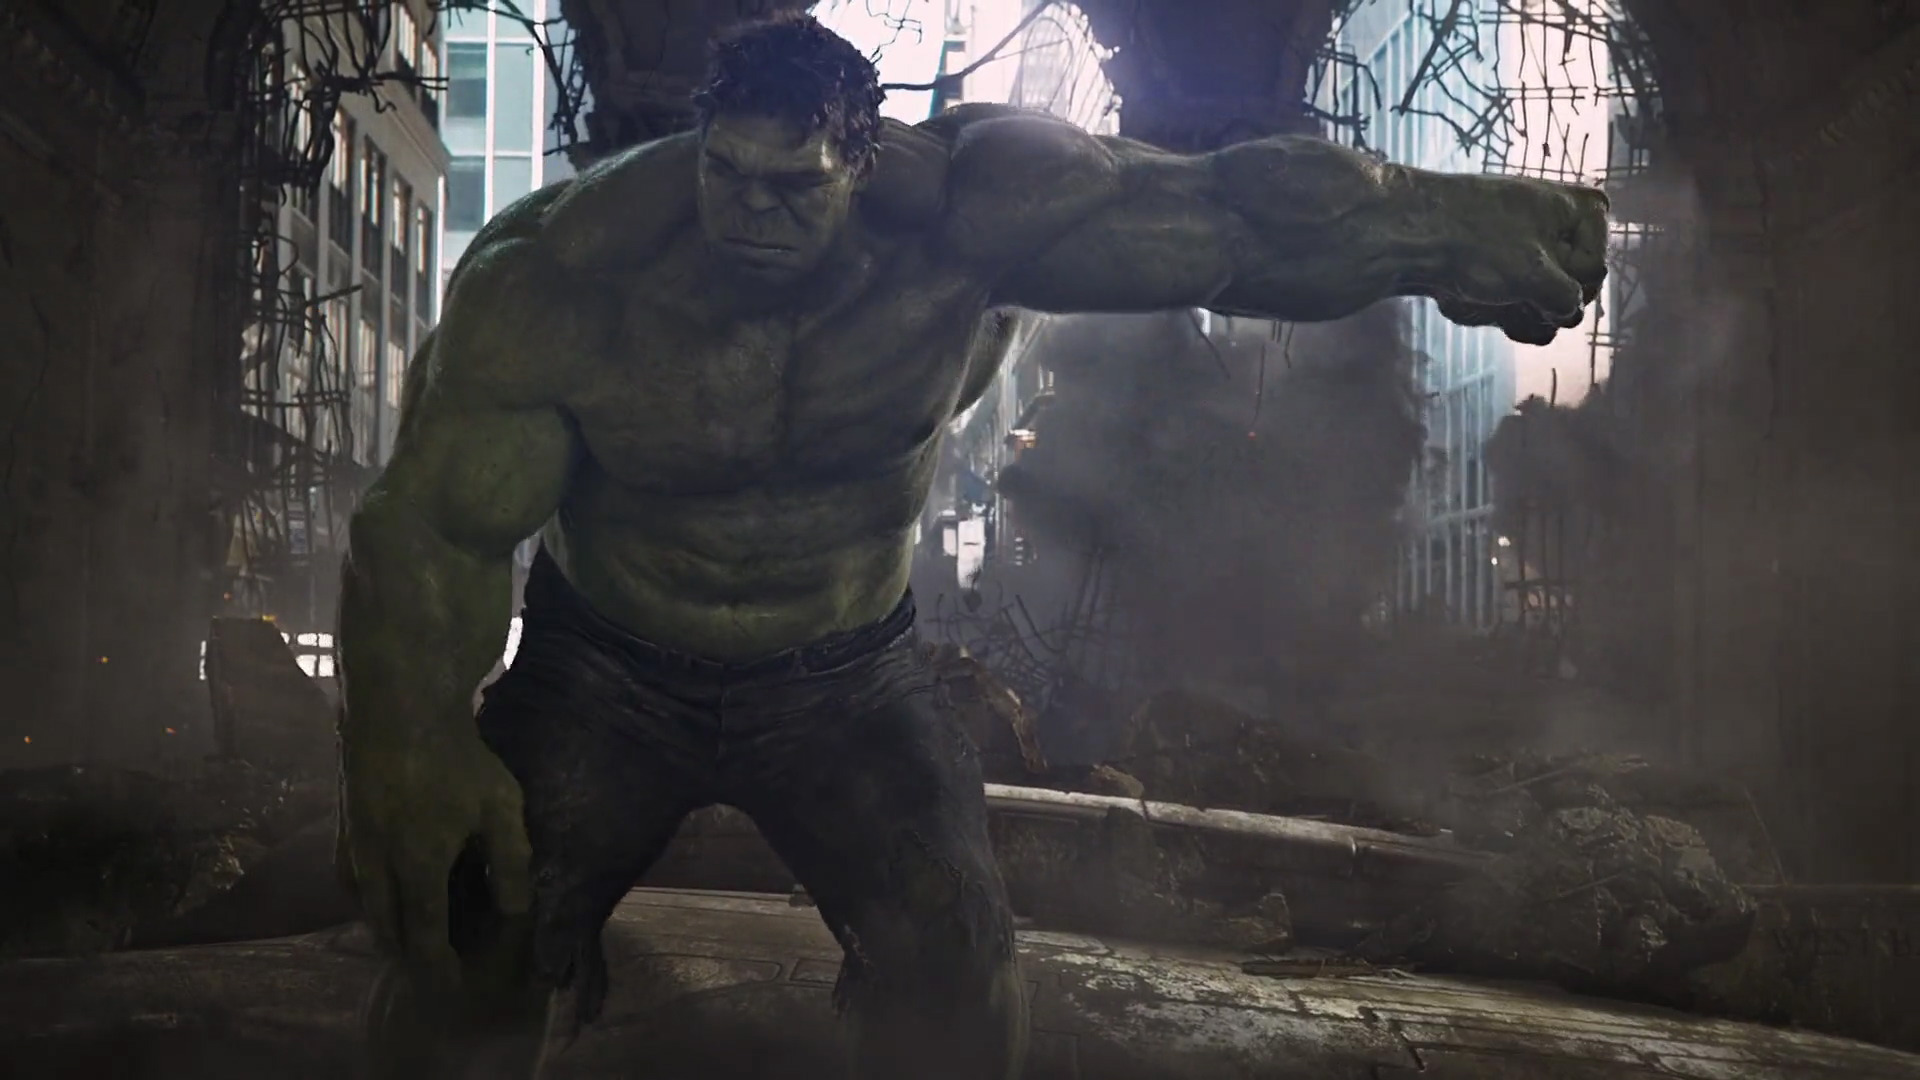 Avengers April: The Incredible Hulk (2008) | Brad Stratton.com